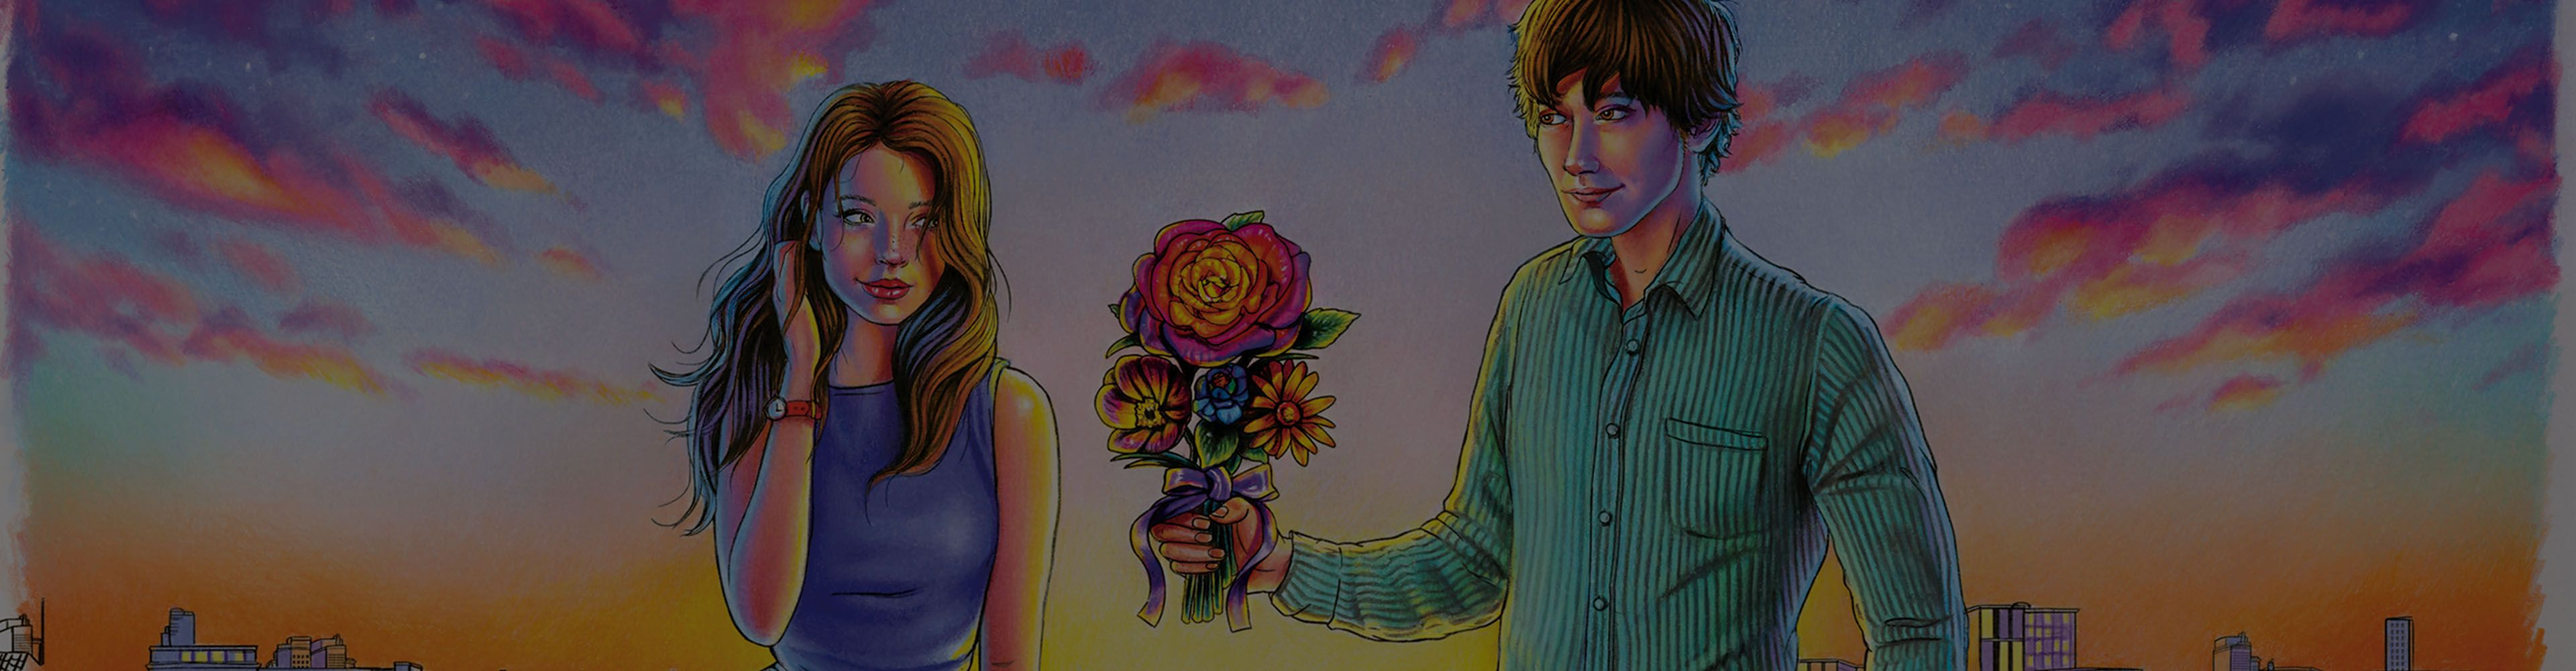 hand-drawn-boy-giving-girl-flowers_bp1d.jpg